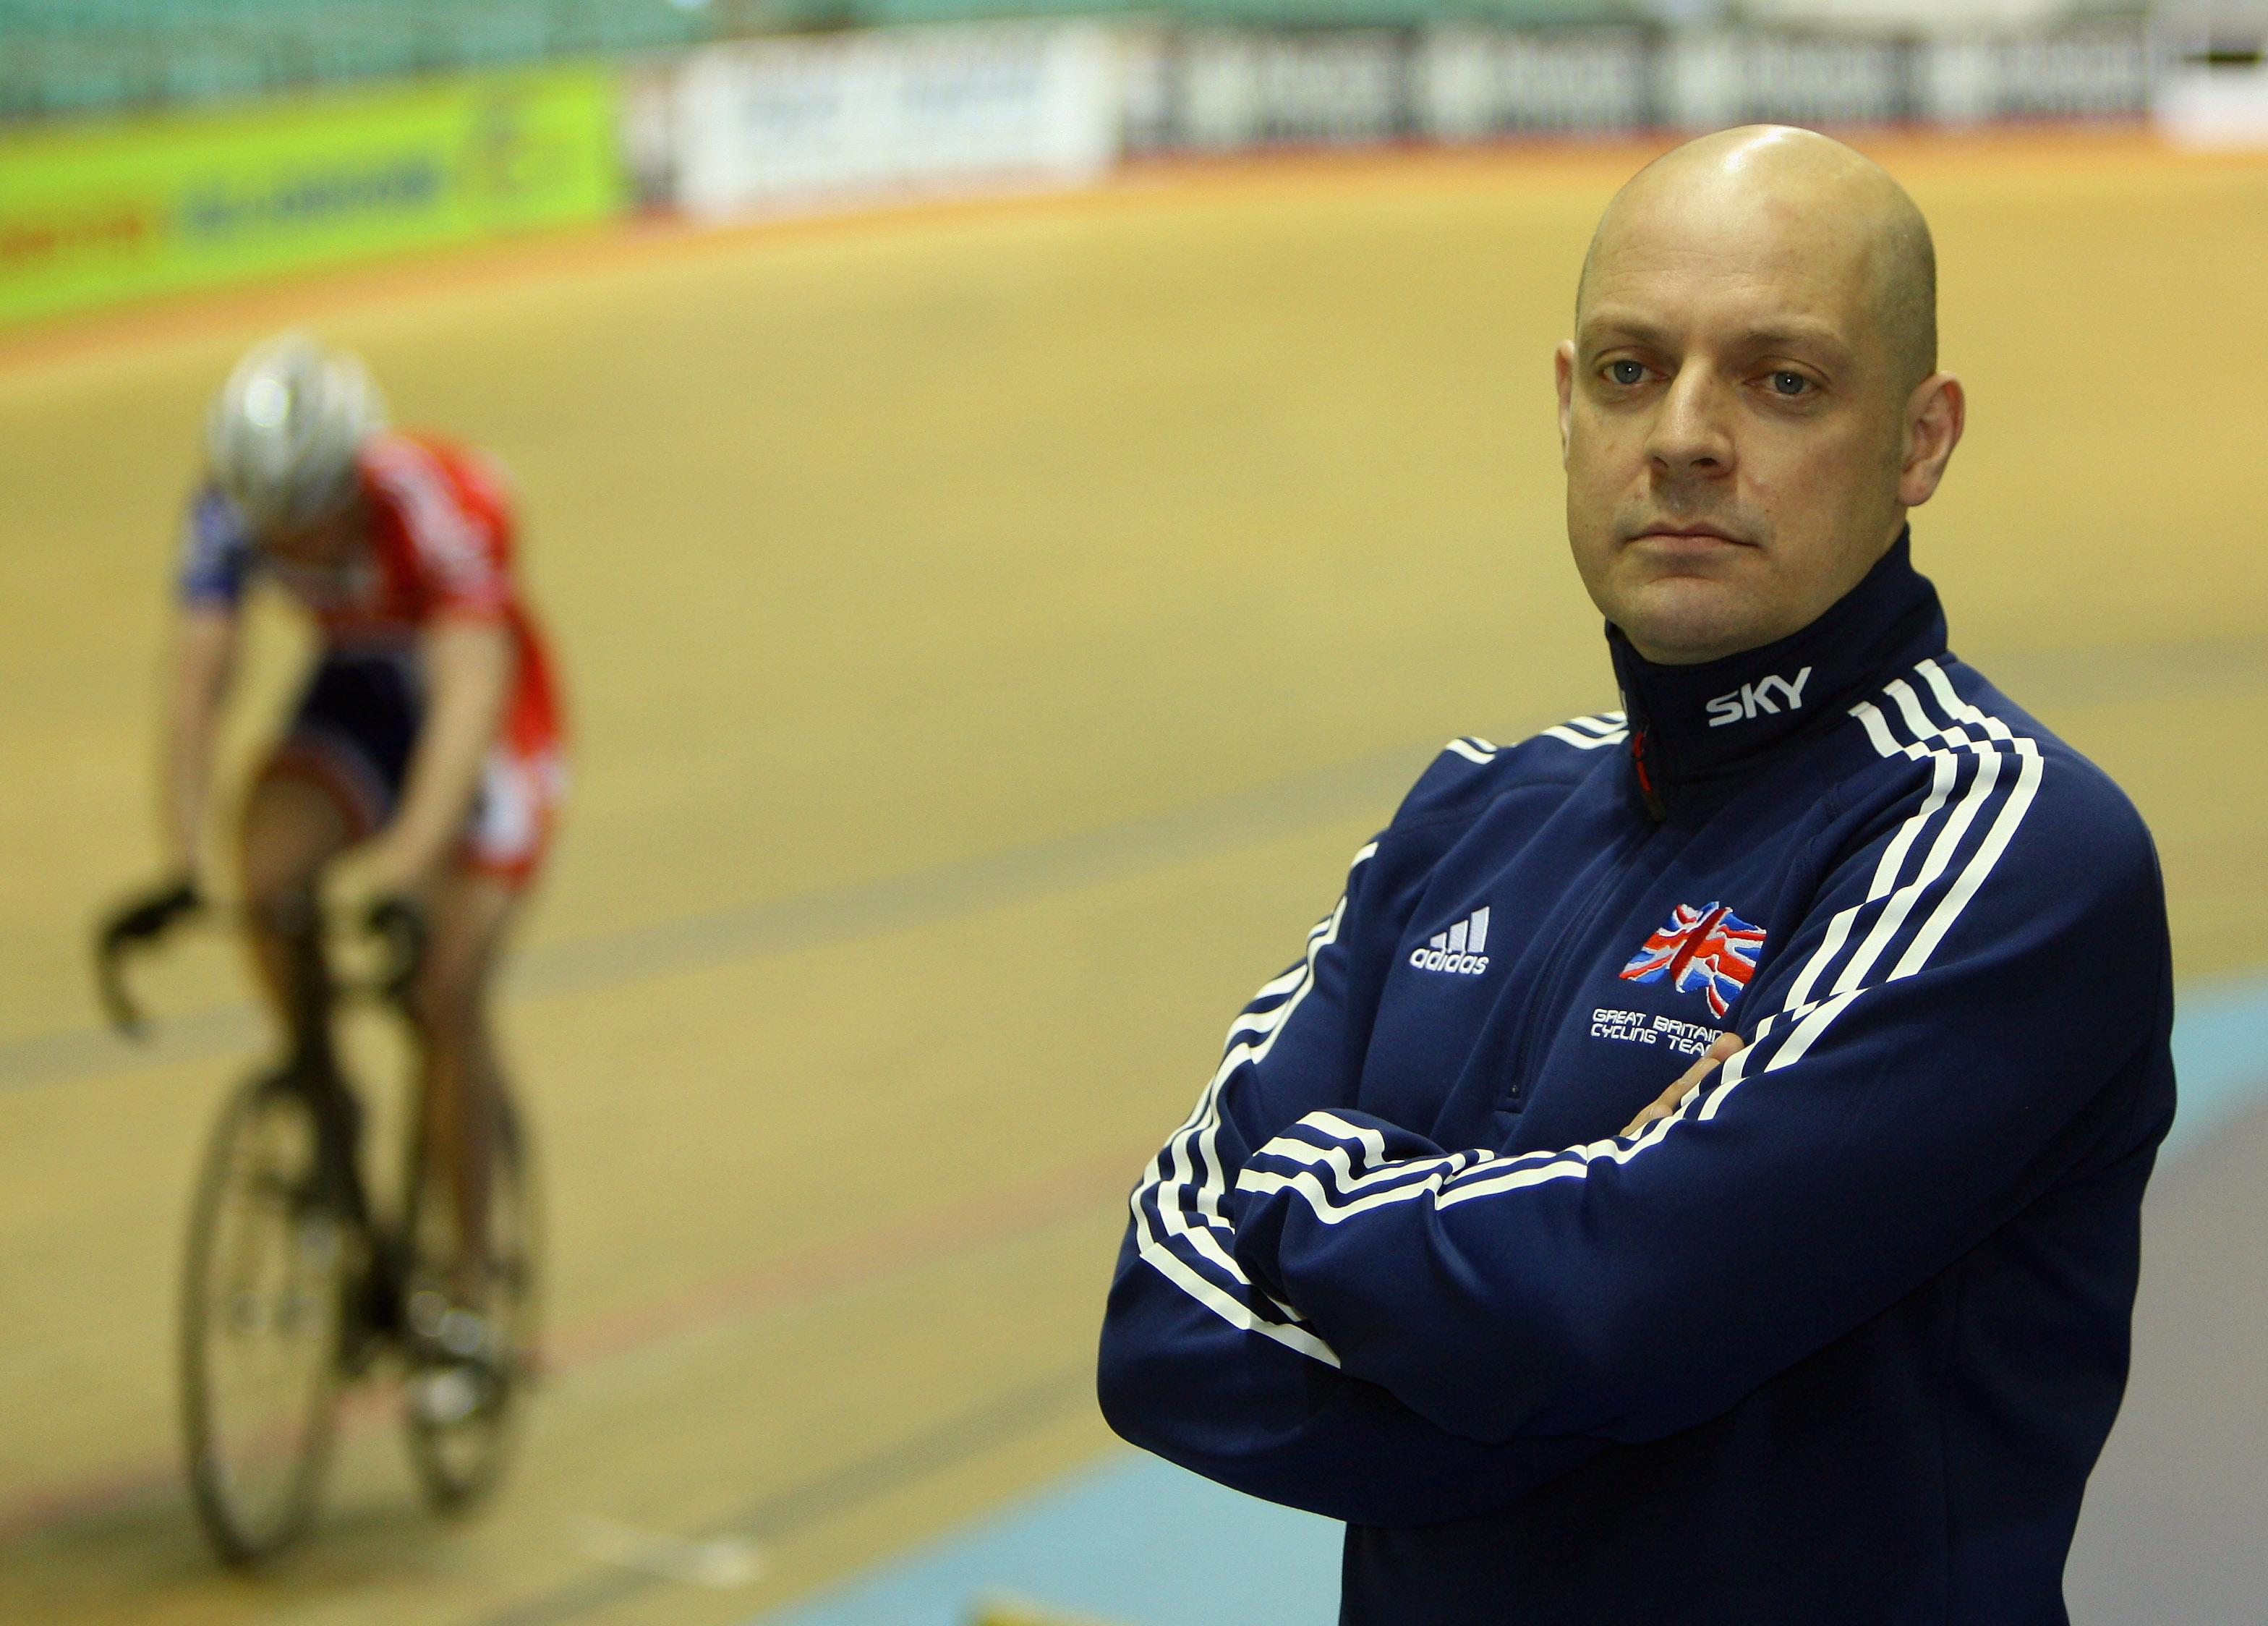 Dave Brailsford promised Team Sky would be whiter than white, beyond reproach